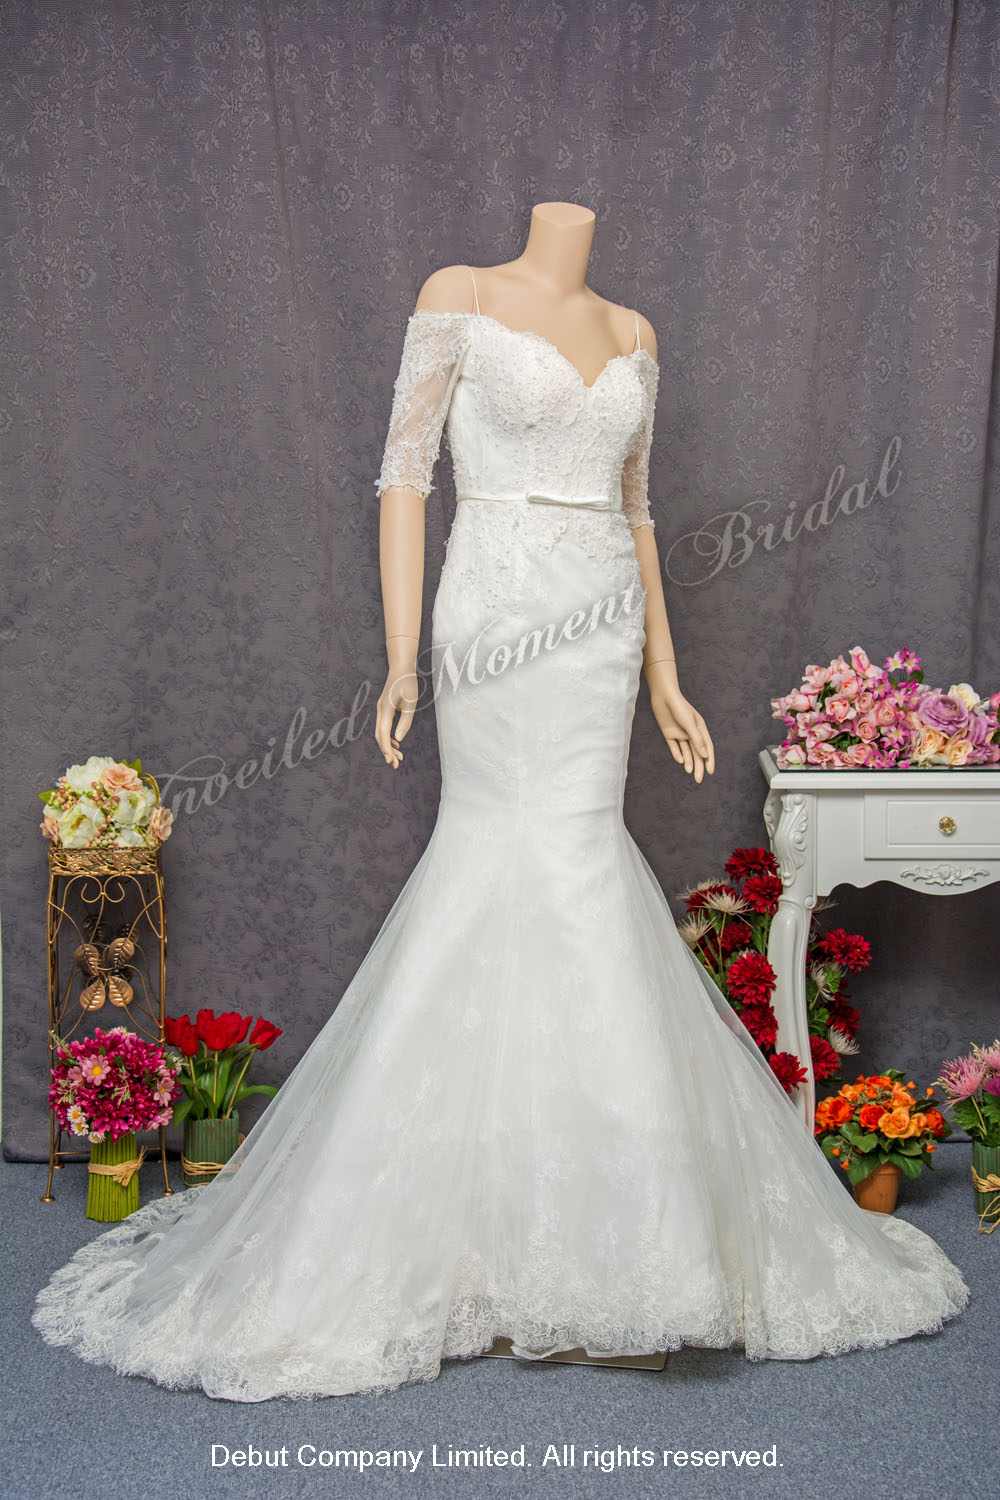 Off-the-shoulder, quarter-sleeved, deep-V neckline, V-shape low back lace embellishment, mermaid wedding dress with a court train. 跌膊中袖, 大V領口, 大露背, 蕾絲釘珠, 美背魚尾婚紗